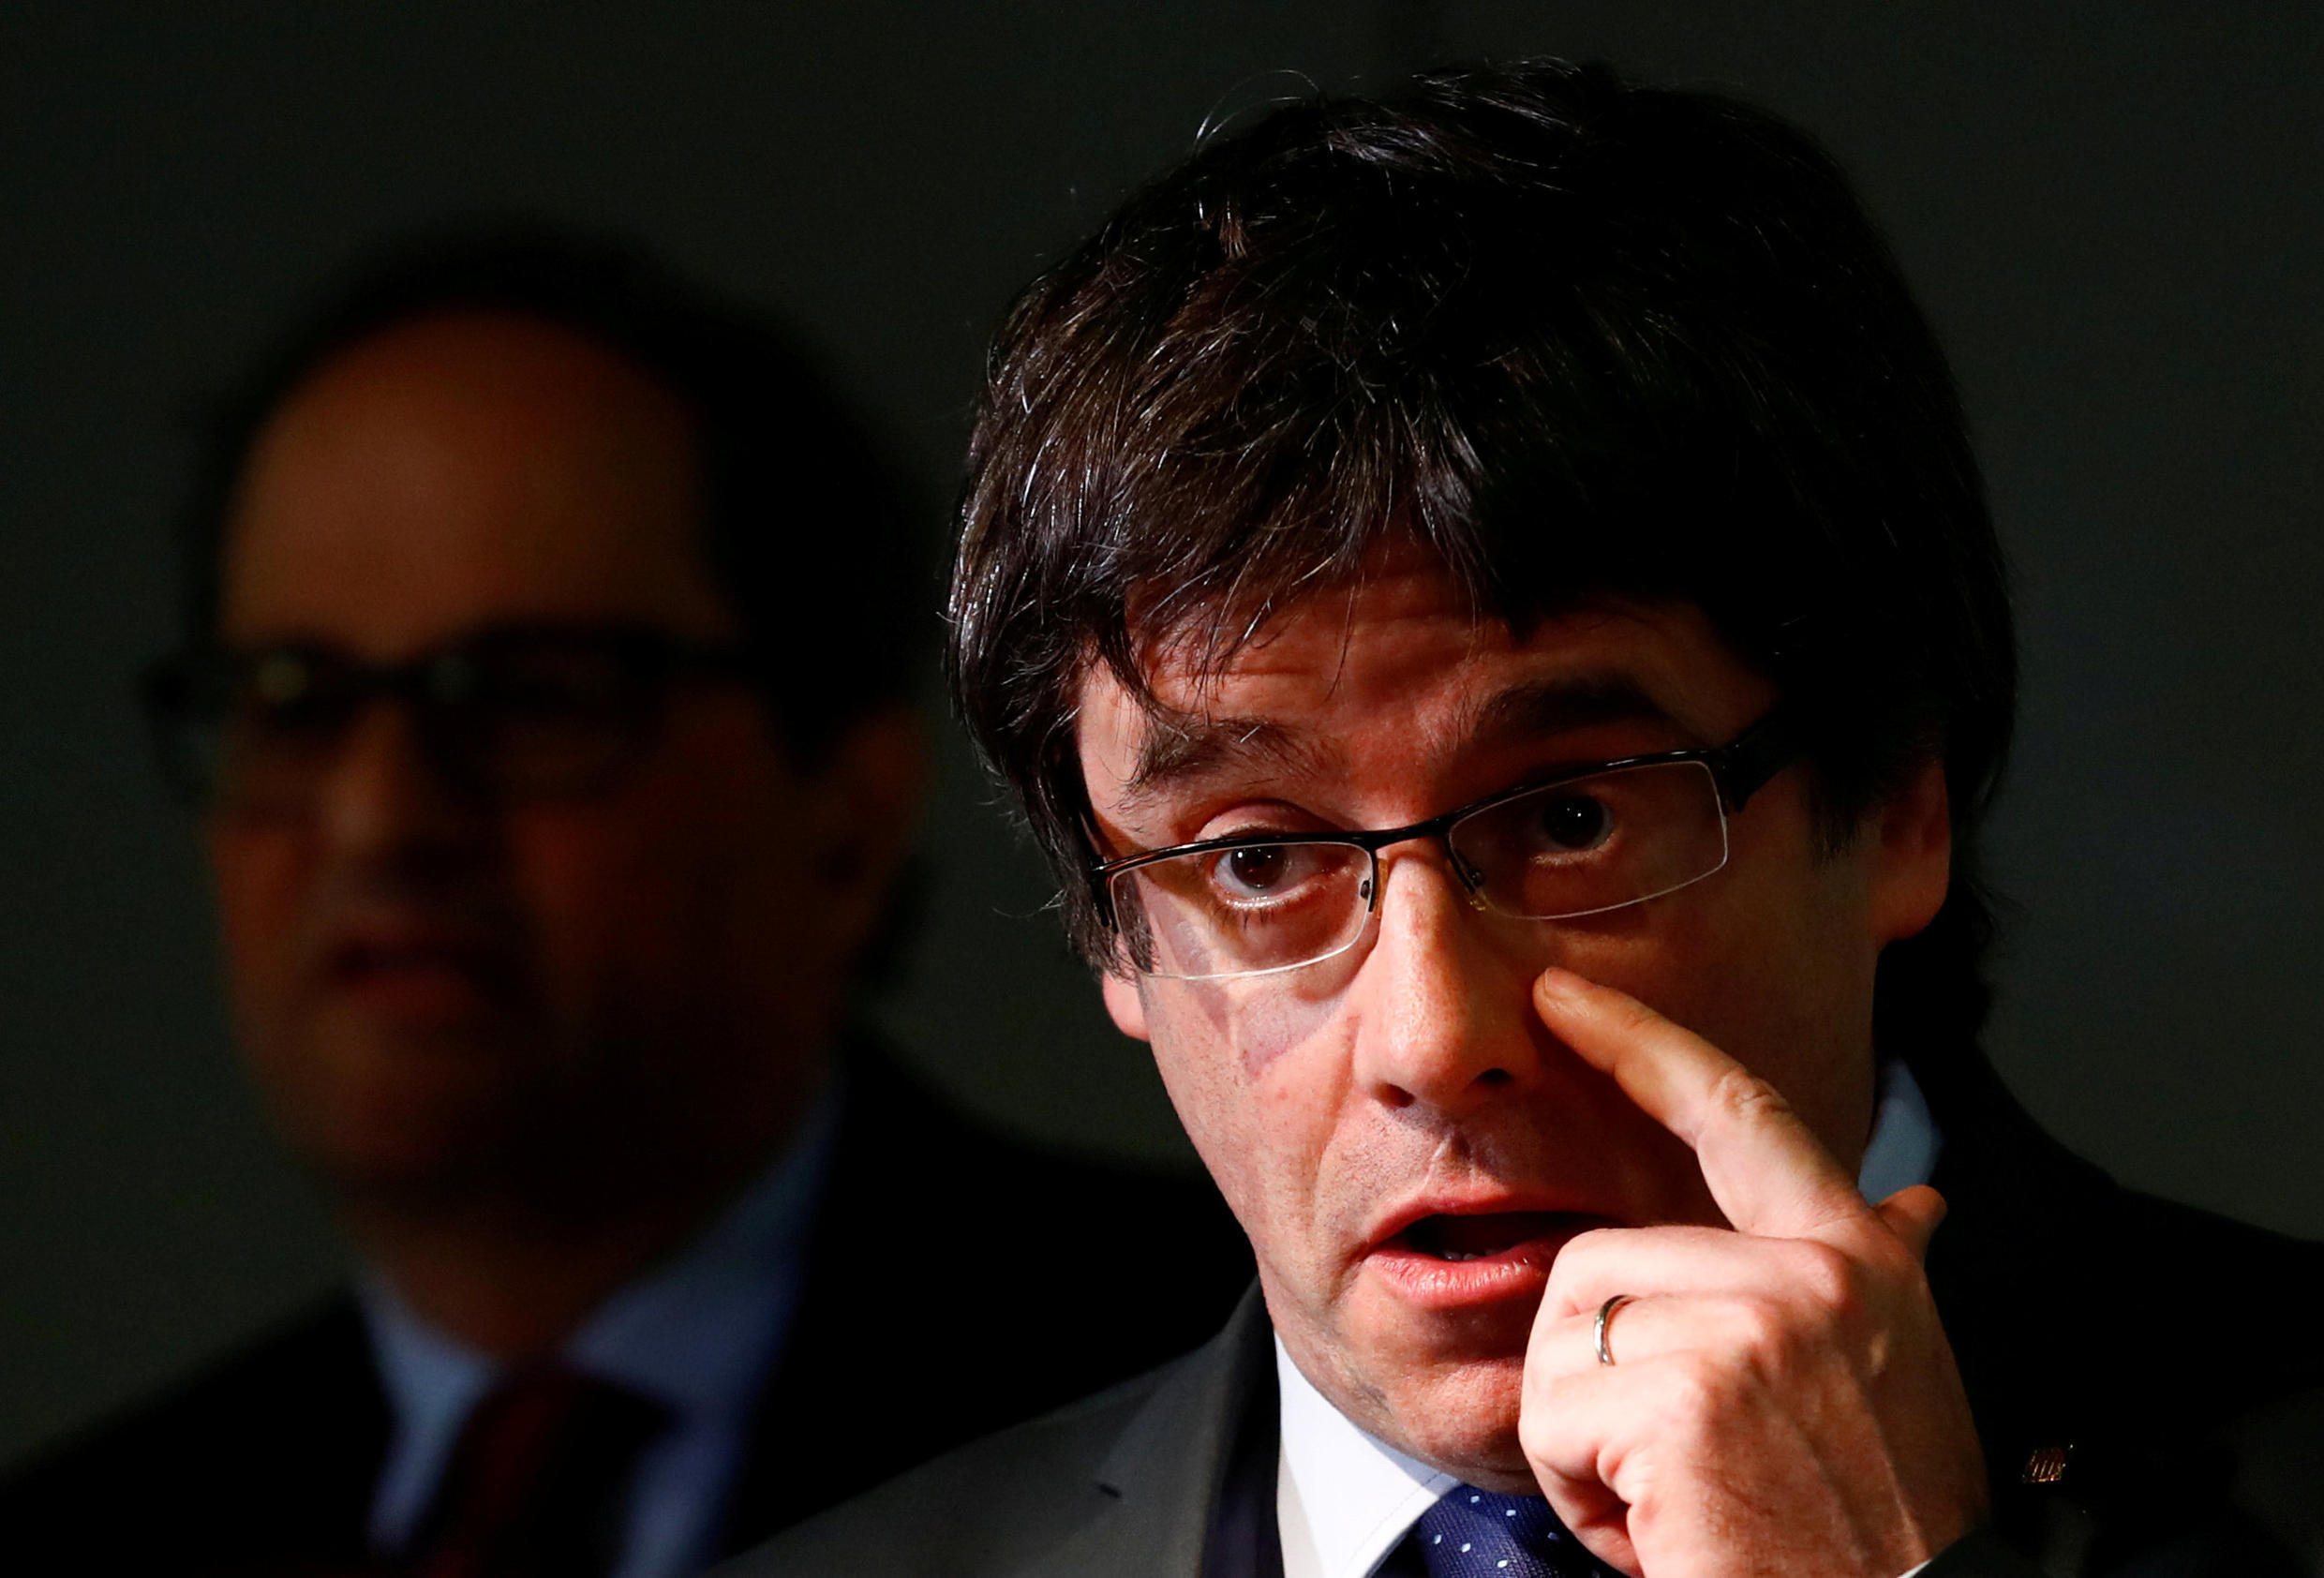 Exiled Catalan separatist leader, Carles Puigdemont, triumphant in the wake of Belgian court decision.